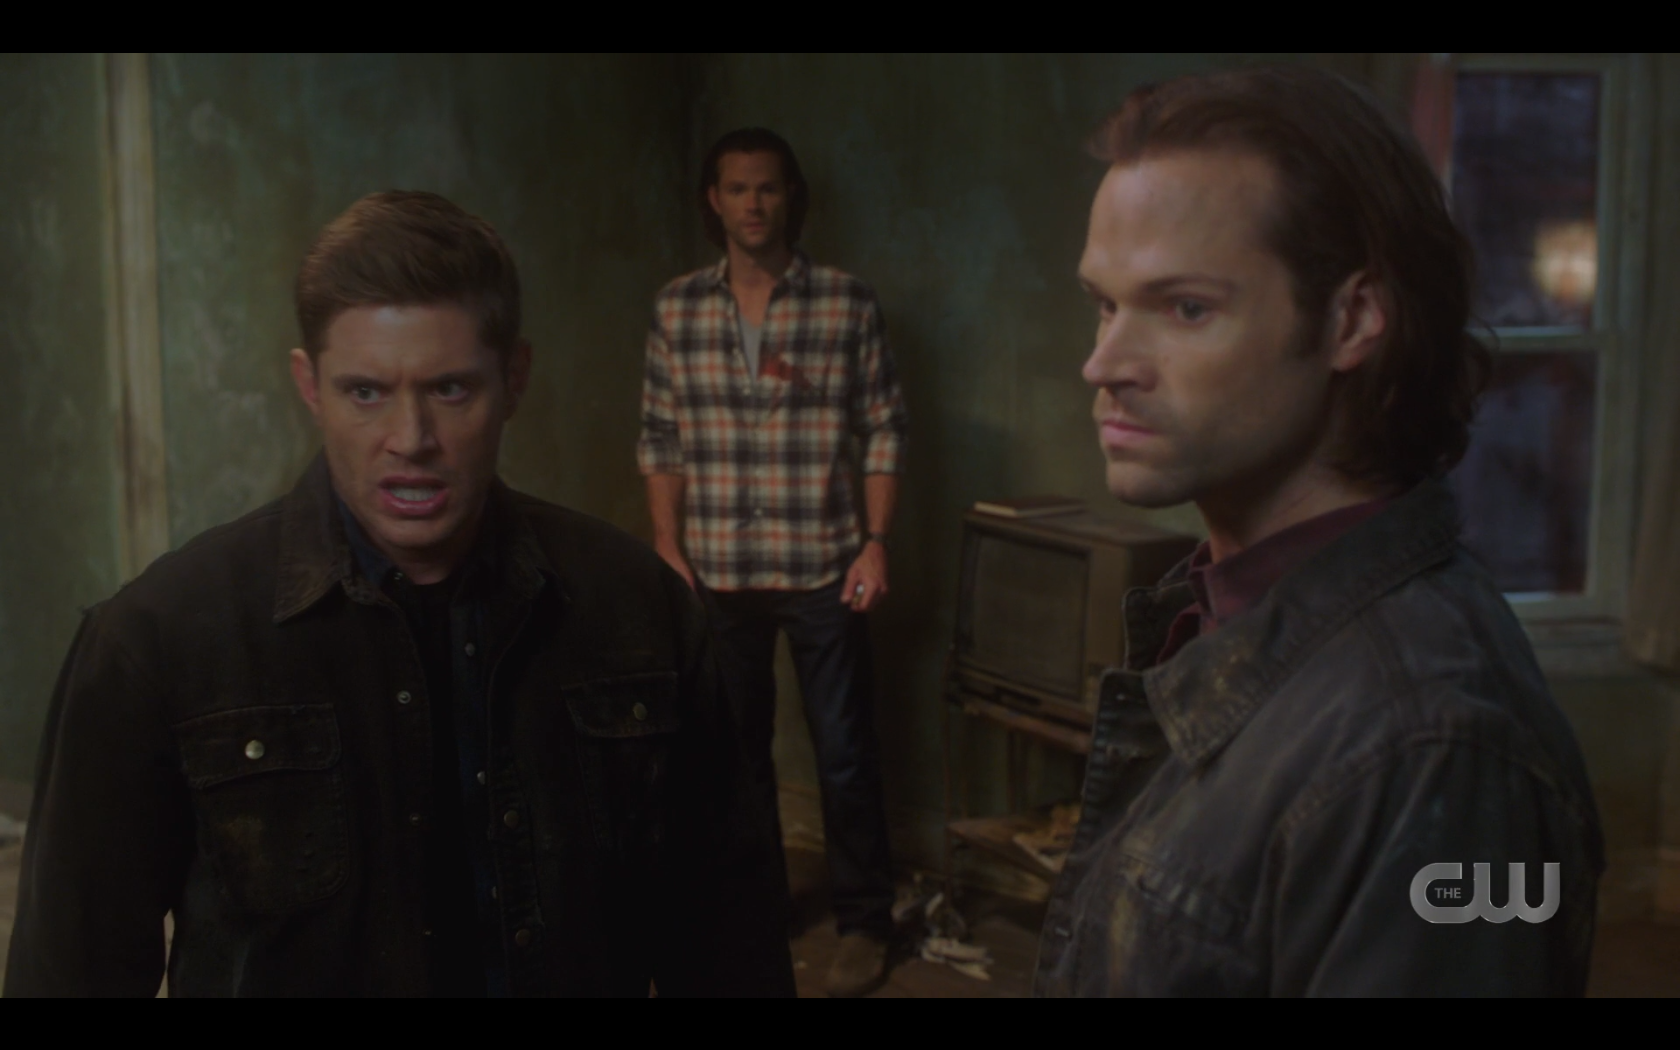 https://thewinchesterfamilybusiness.com/images/CaptionThis/SPN_15x09.png